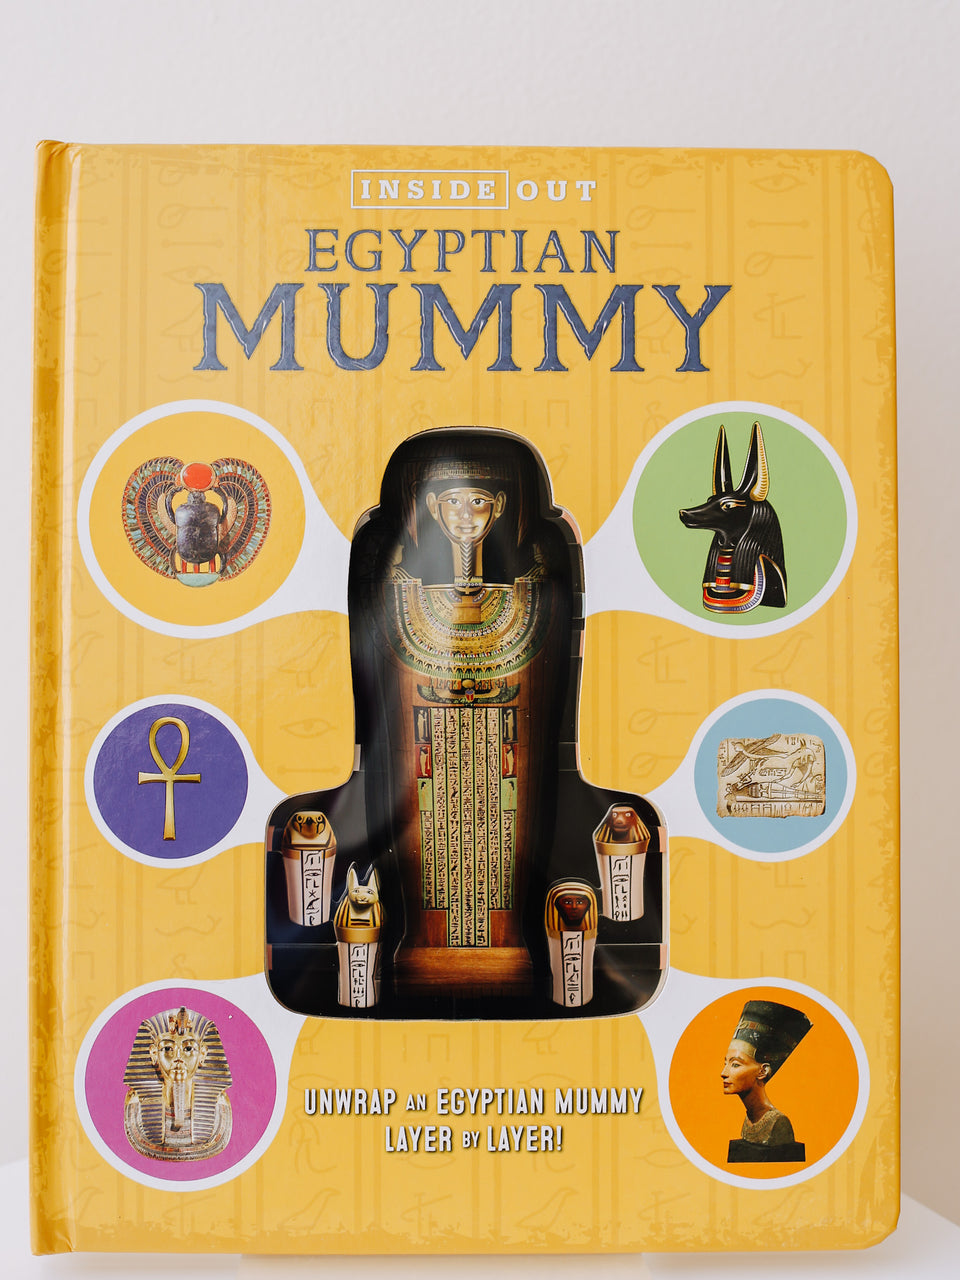 Inside Out: Egyptian Mummies by Lorraine Jean Hopping